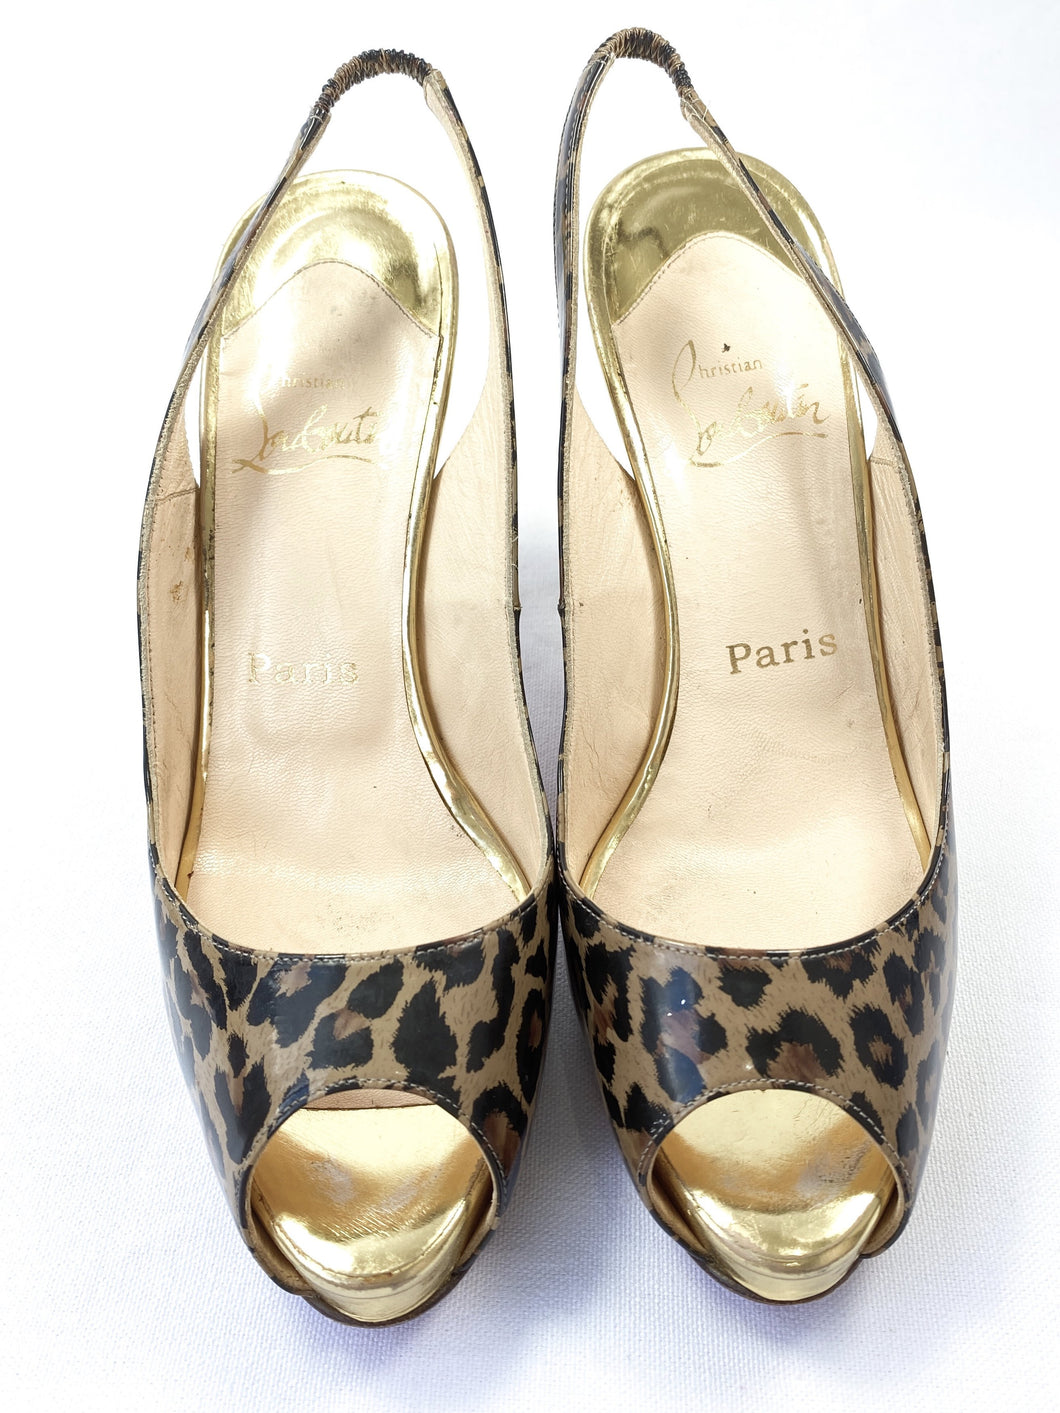 Christian Louboutin No Prive leopard print pumps size 38 - My Girlfriend's Wardrobe York Pa